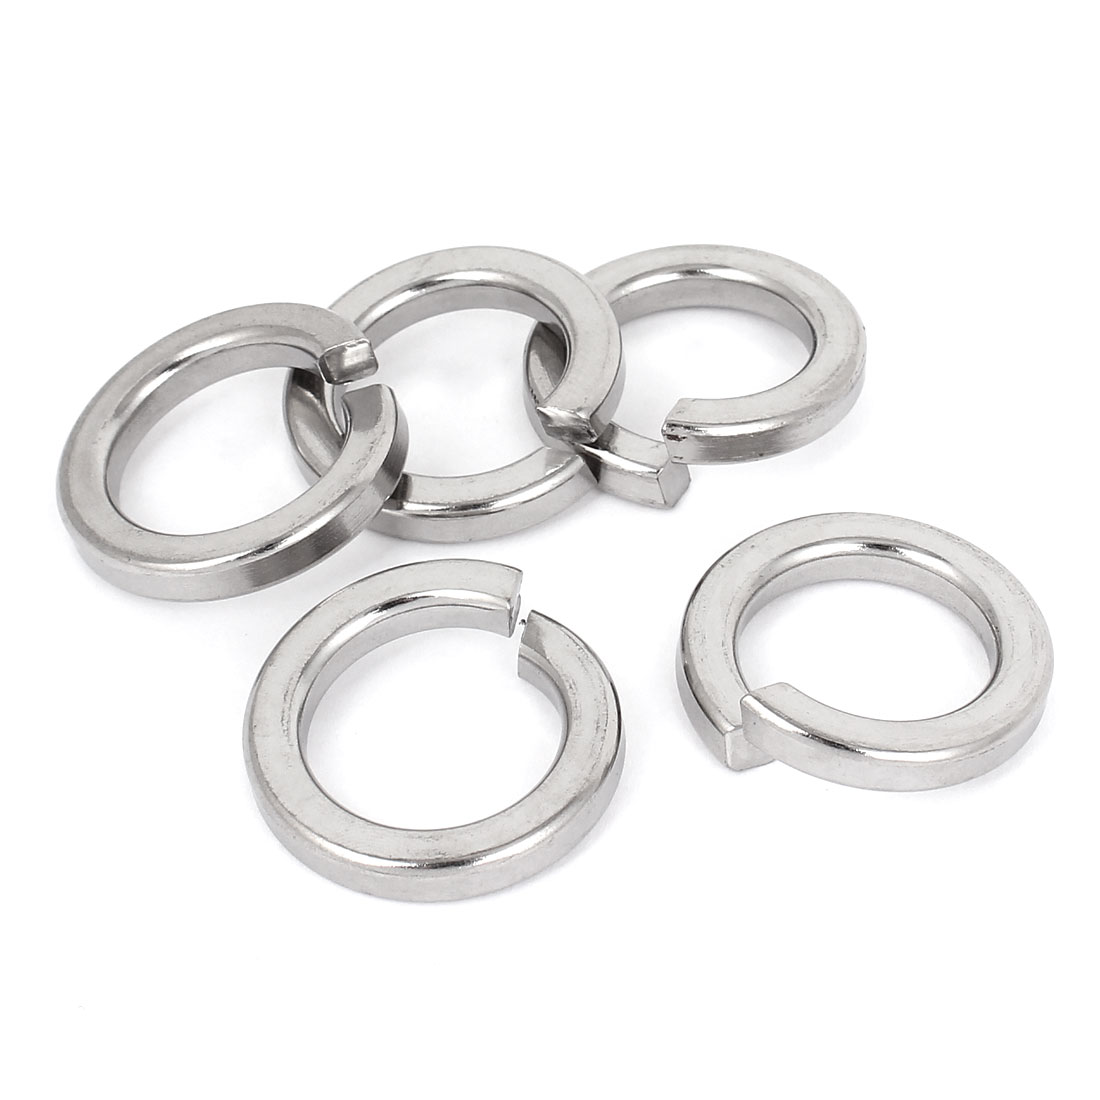 "5pcs 316 Stainless Steel Split Lock Spring Washers 25mm 1"" Screw Spacer Pad"